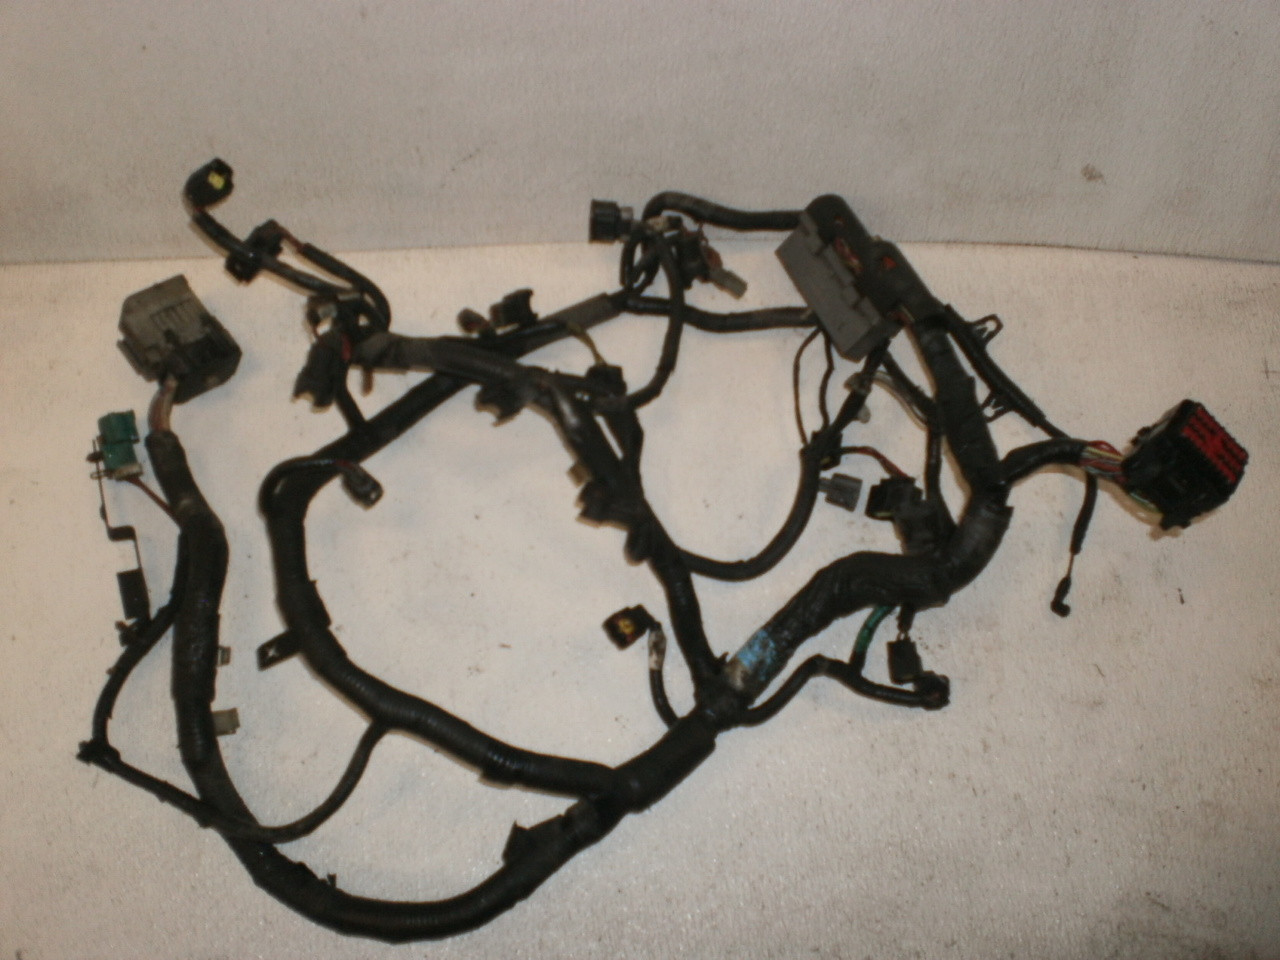 1998 ford explorer mercury mountaineer 5 0 v8 302 engine fuel injection wire  harness loom f87b-12b637 gt40 - fordonlyparts com